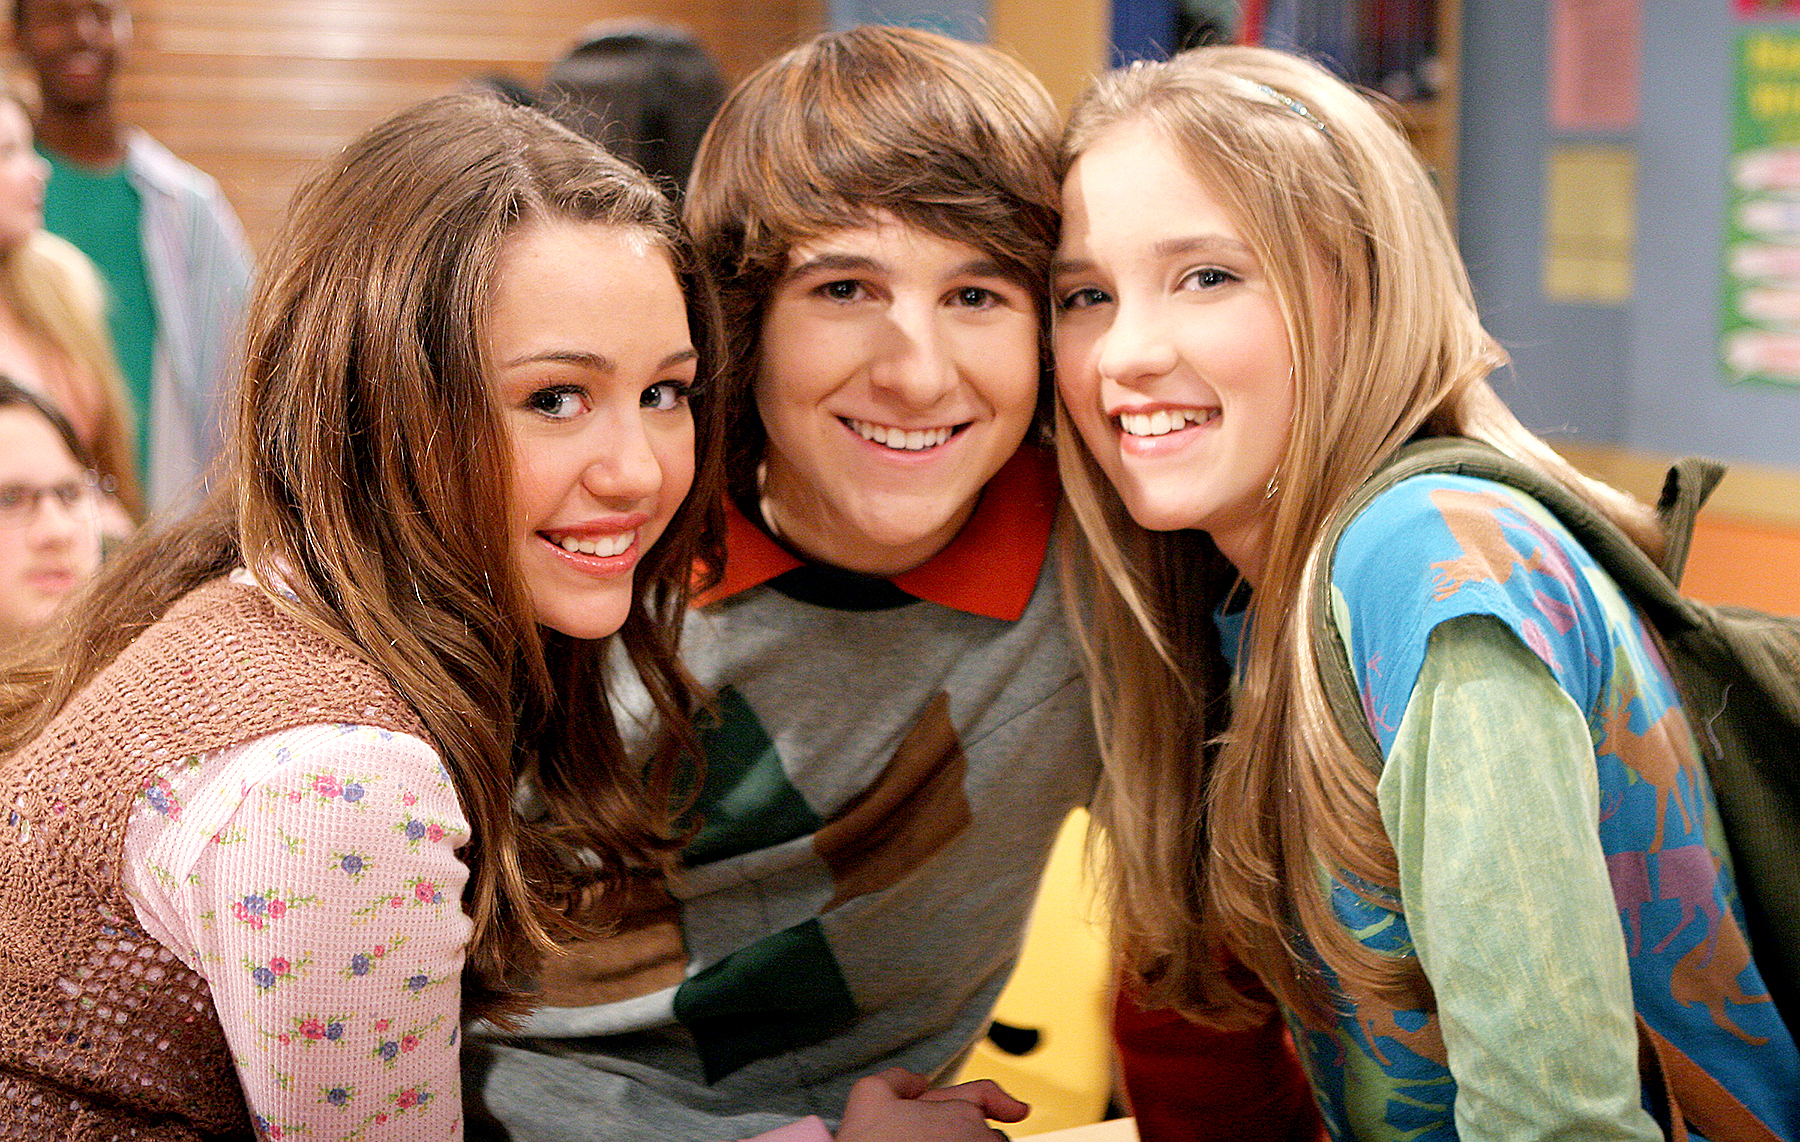 Miley Cyrus, Mitchel Musso, and Emily Osment on Hannah Montana